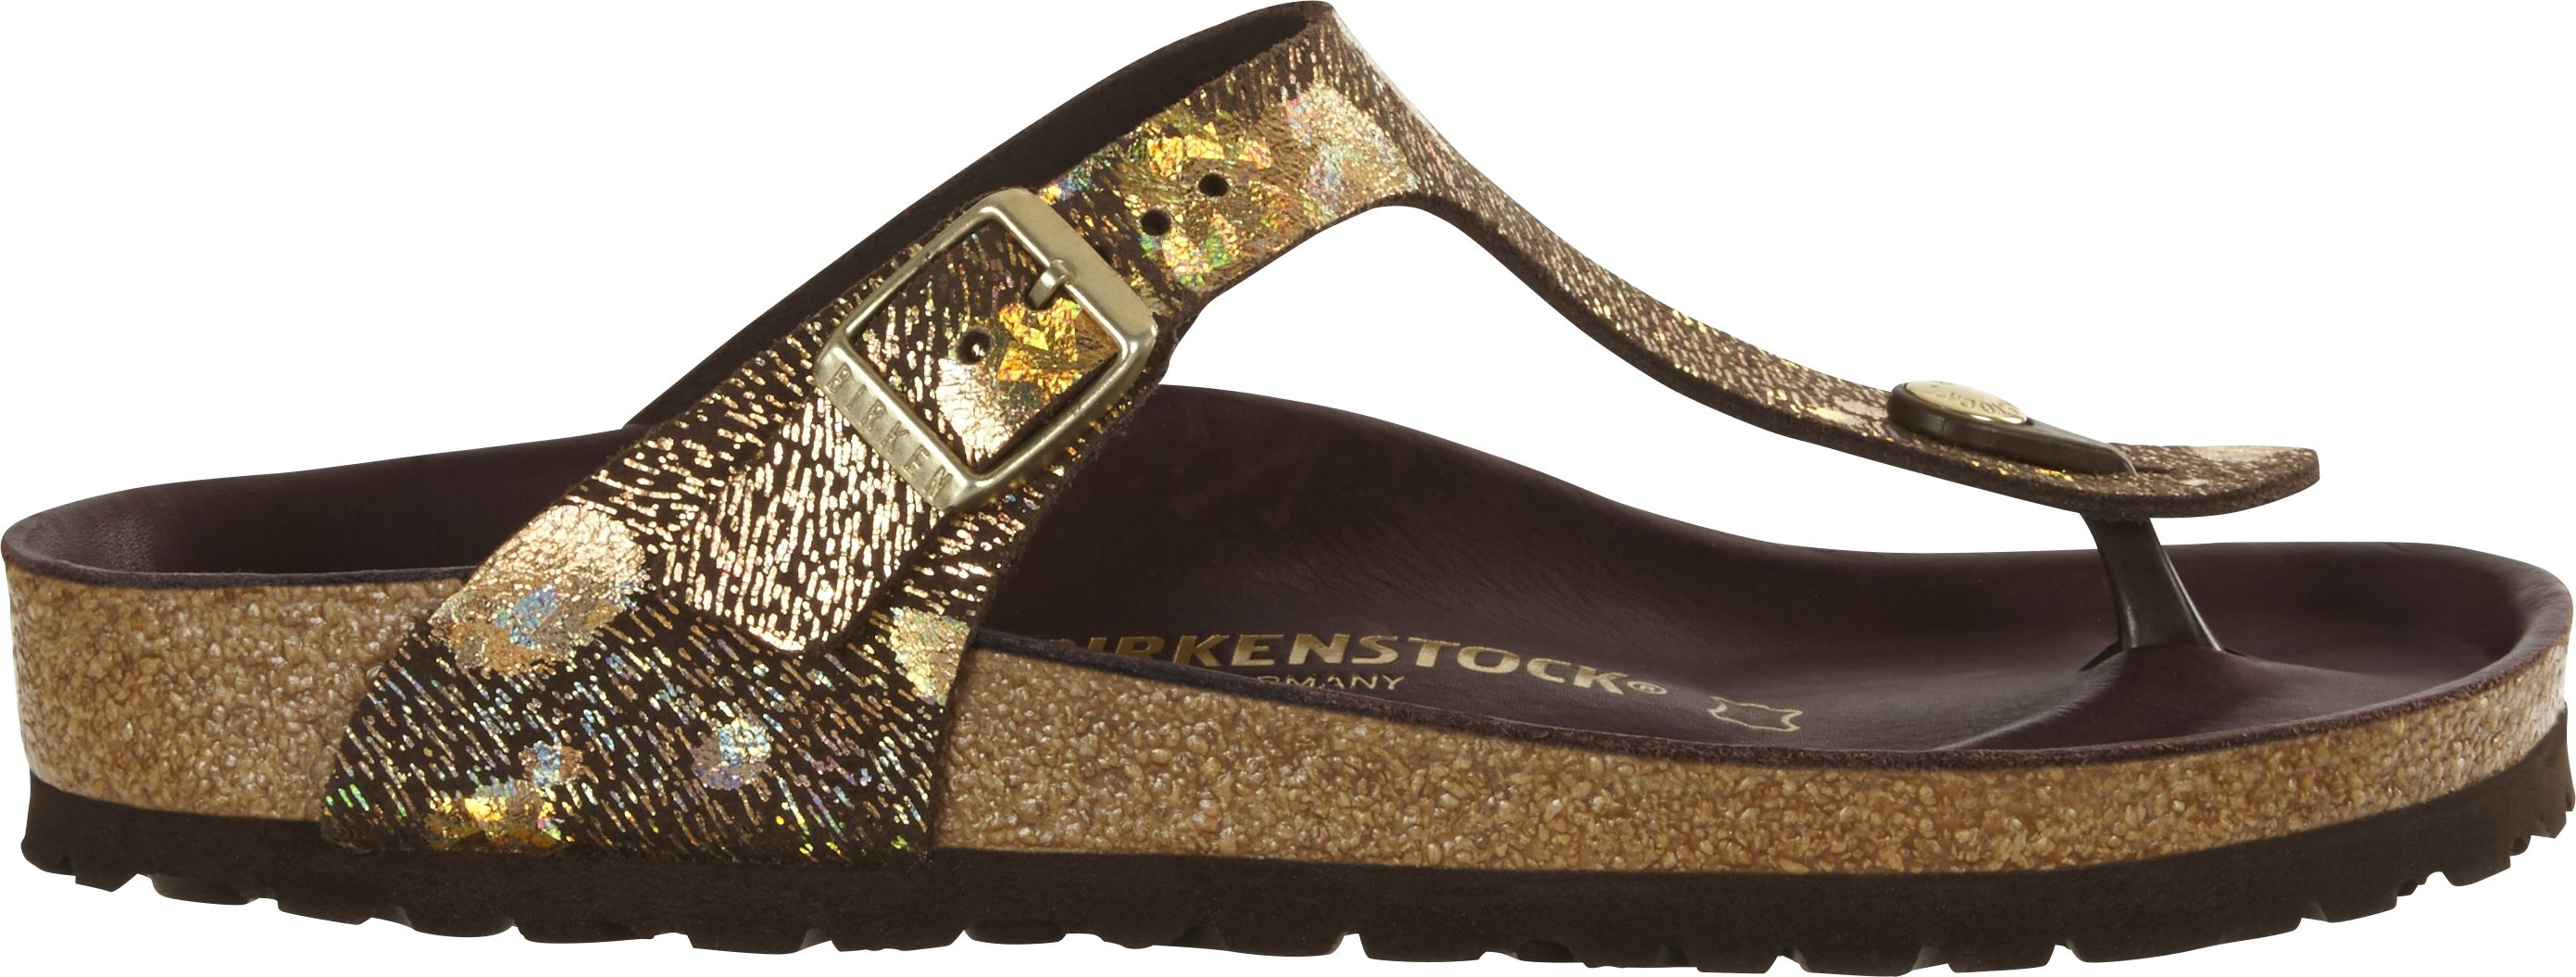 105fe00a3e70 ... Preview  Birkenstock Exquisit Gizeh Spotted Metallic Brown ...